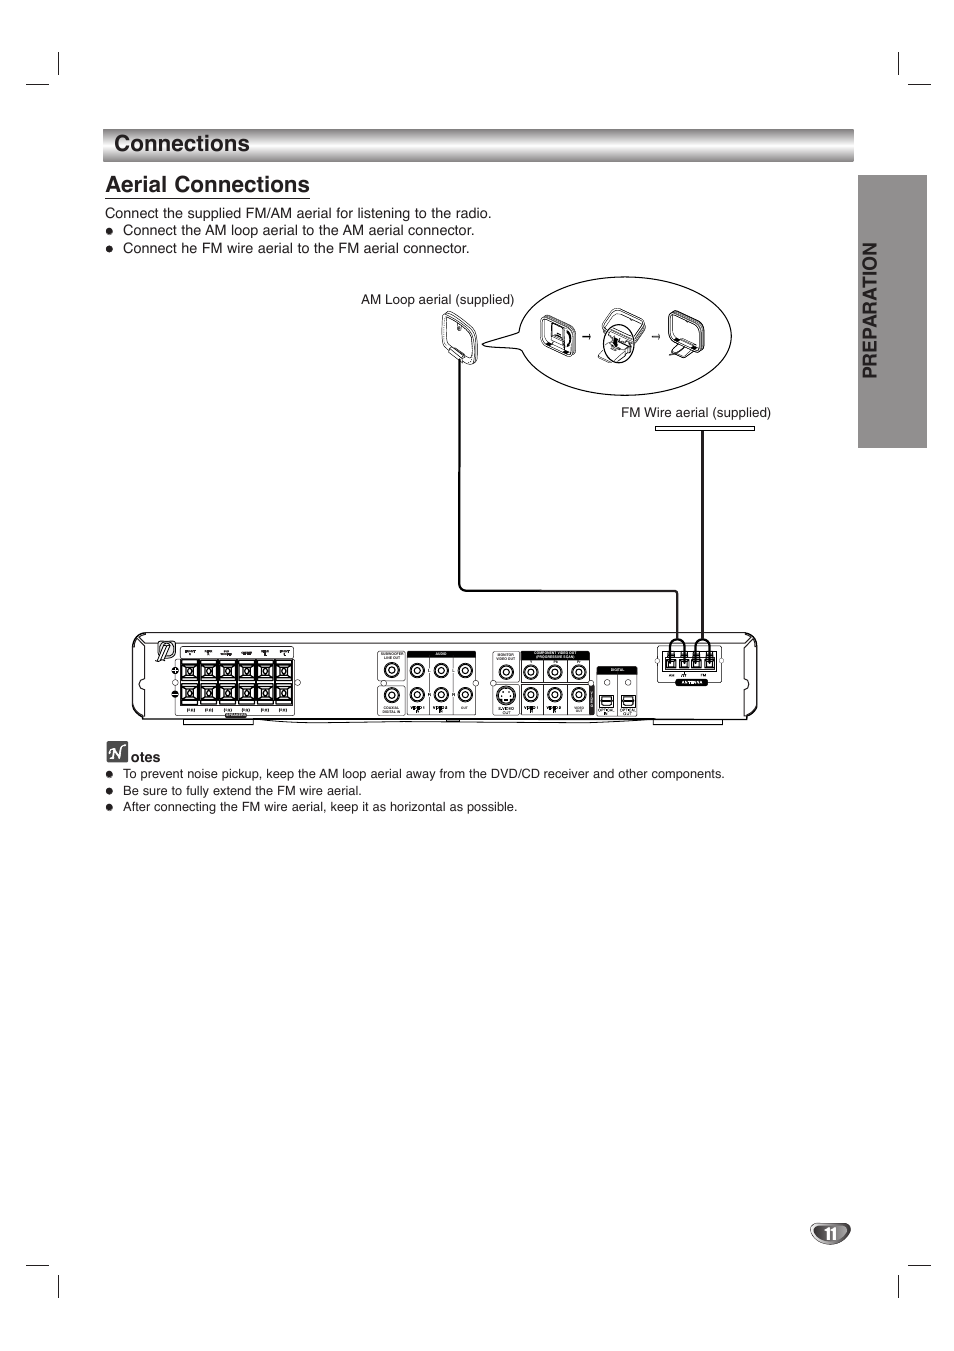 Connections Aerial Prep Ara Tion Lg Lh T1000 User Wiring An Plug Manual Page 11 36